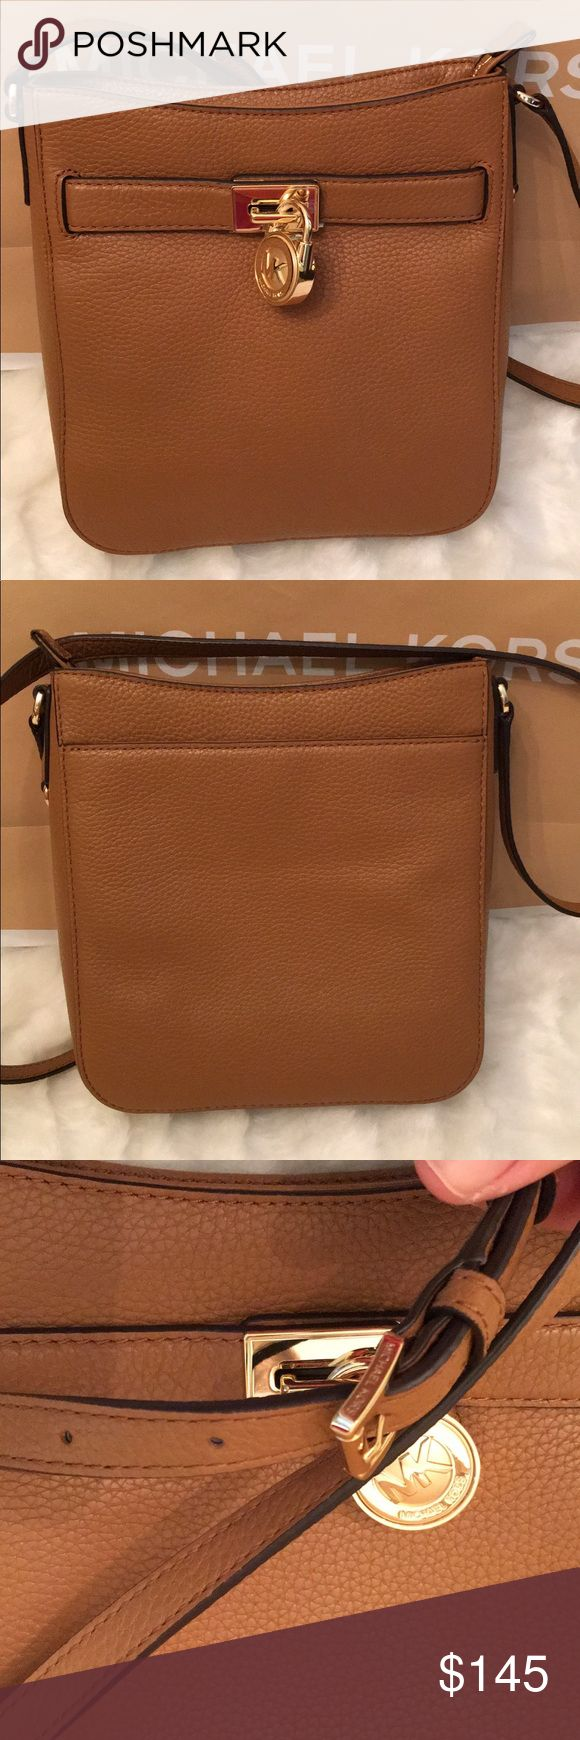 NWT Michael kors crossbody Brand new with tags Michael kors hamilton crossbody color acorn adjustable strap MICHAEL Michael Kors Bags Crossbody Bags